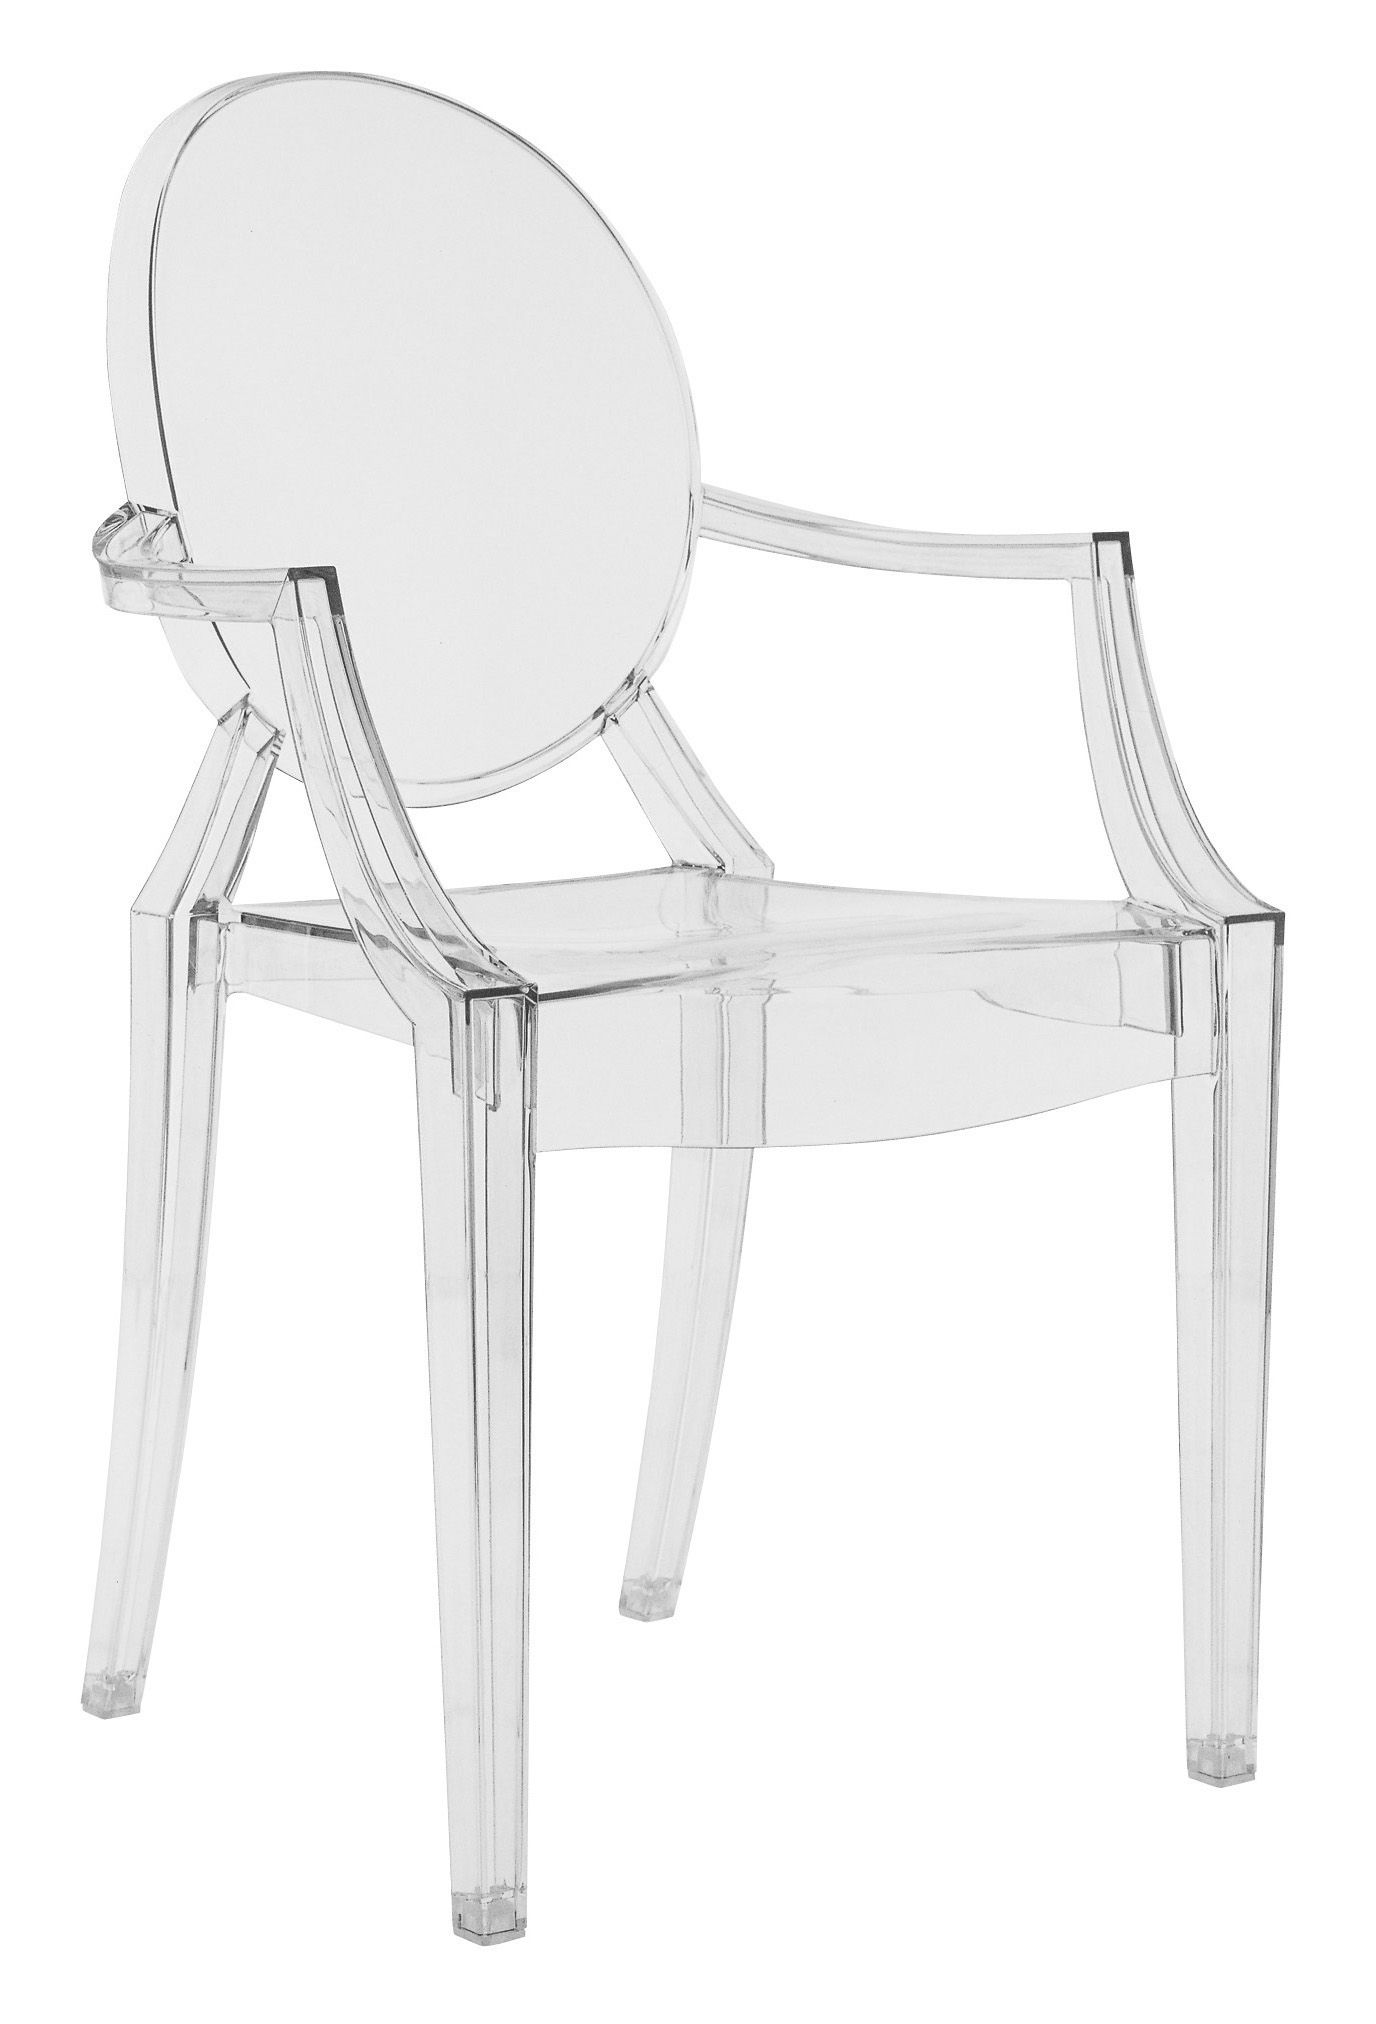 la biblioth que design philippe starck frenchy fancy. Black Bedroom Furniture Sets. Home Design Ideas